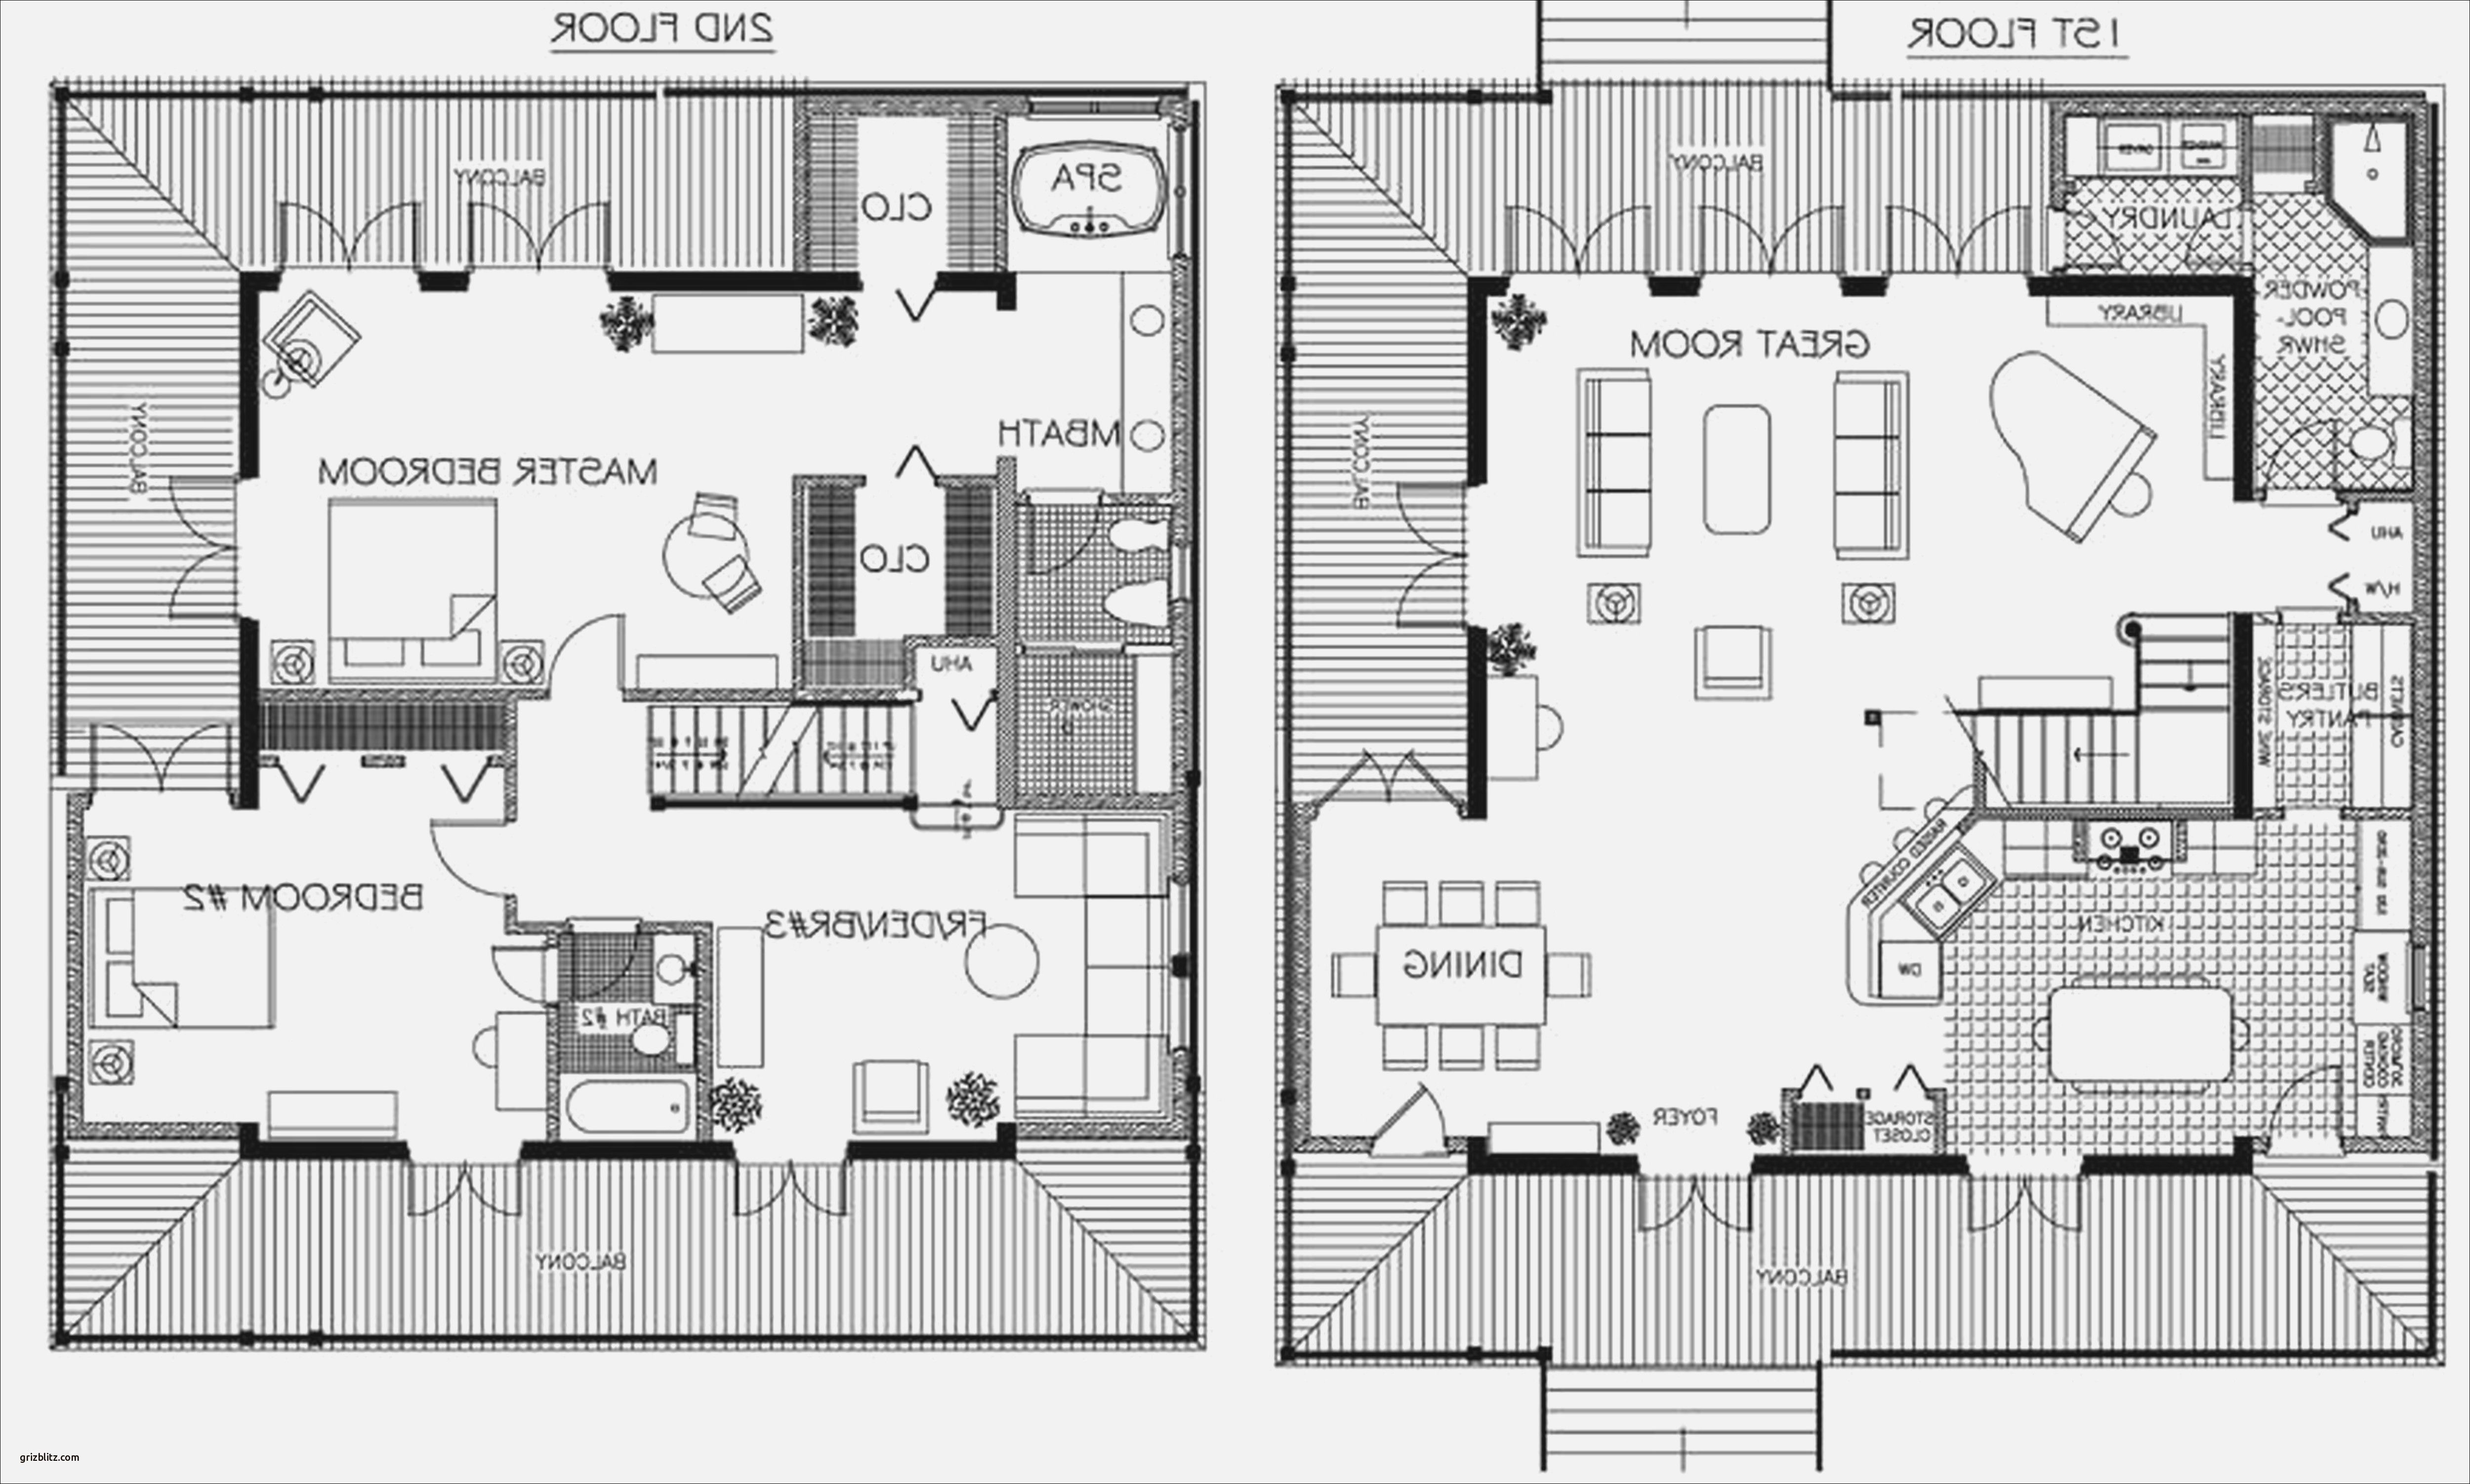 30 Excellent Home Floor Plans Free Novelty Japan House Design Minecraft Modern House Blueprints Traditional Japanese House